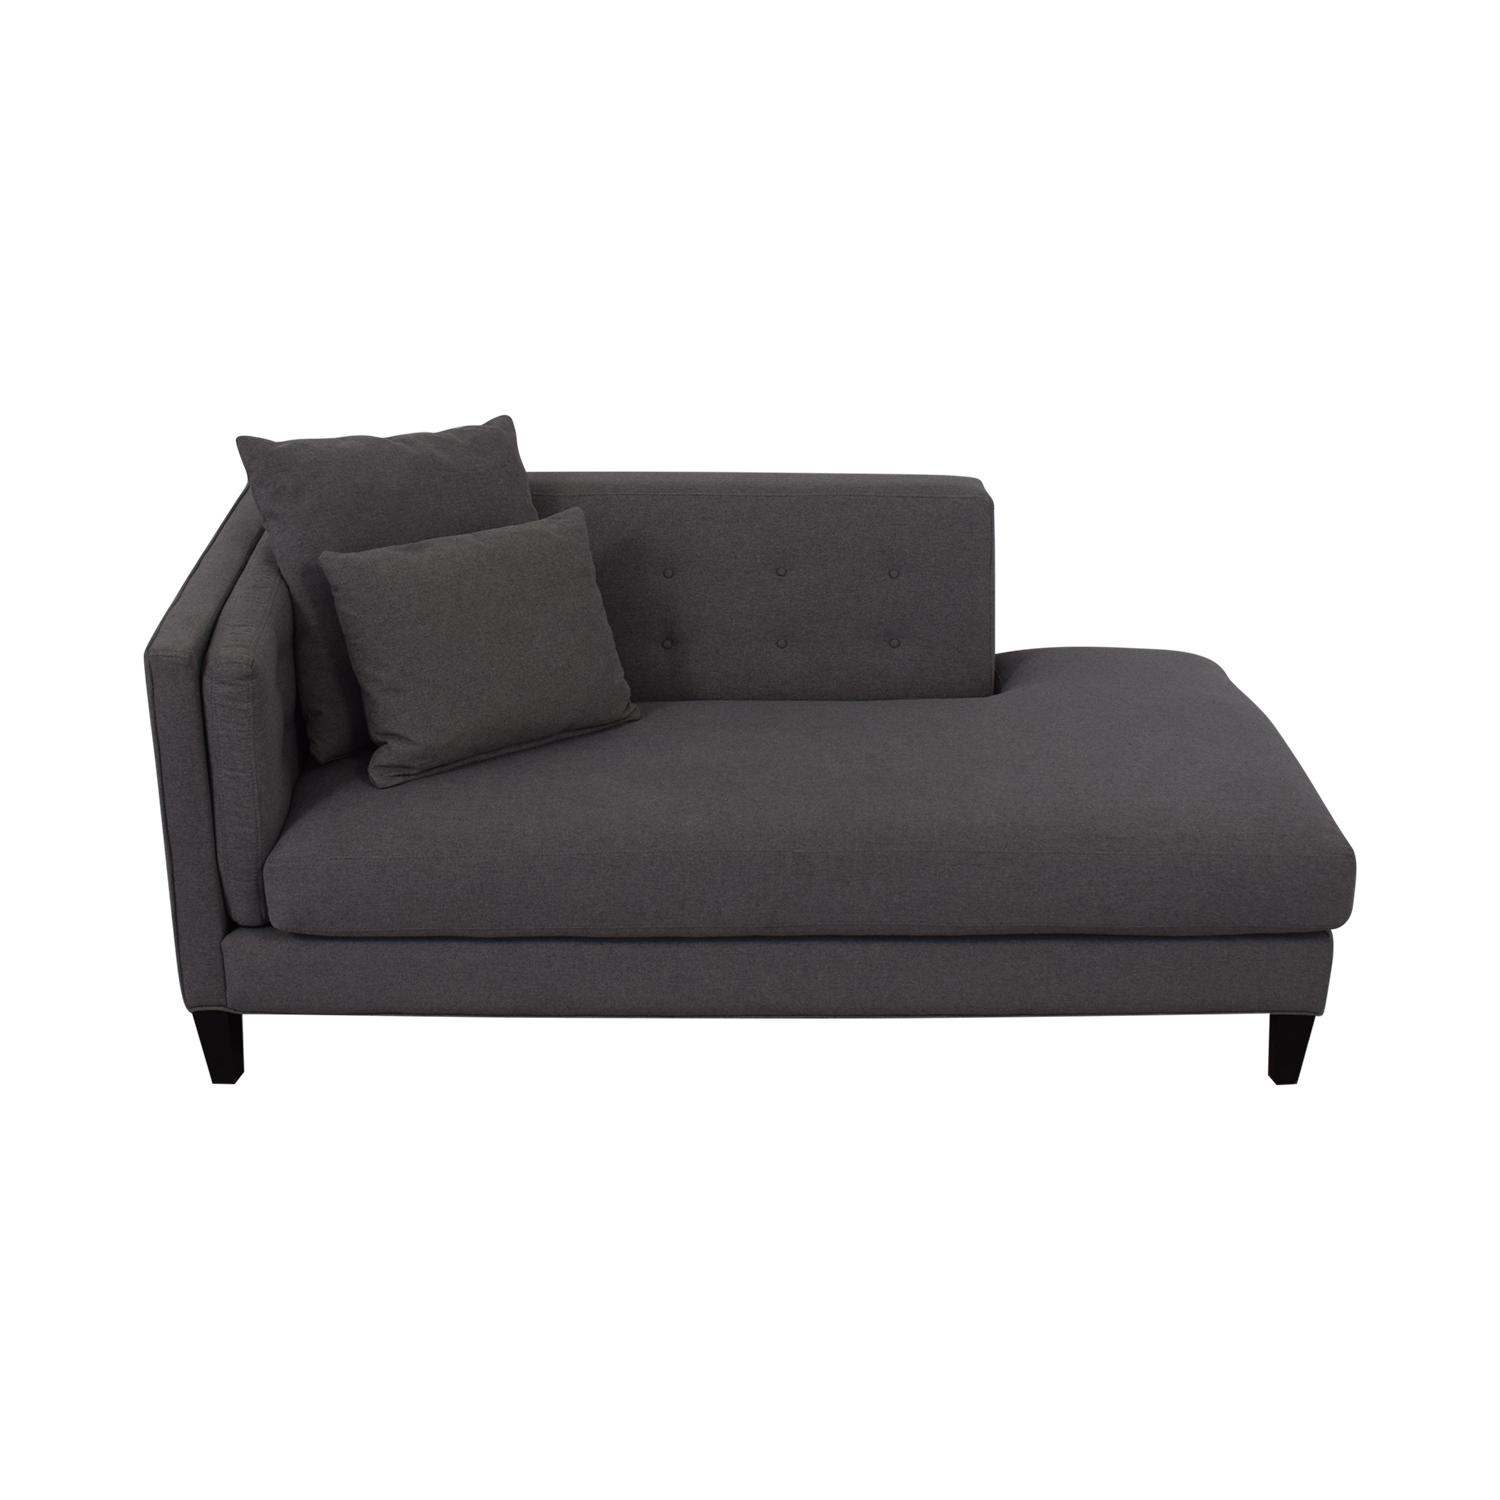 Jonathan Louis Jonathan Louis Left Facing Chaise coupon